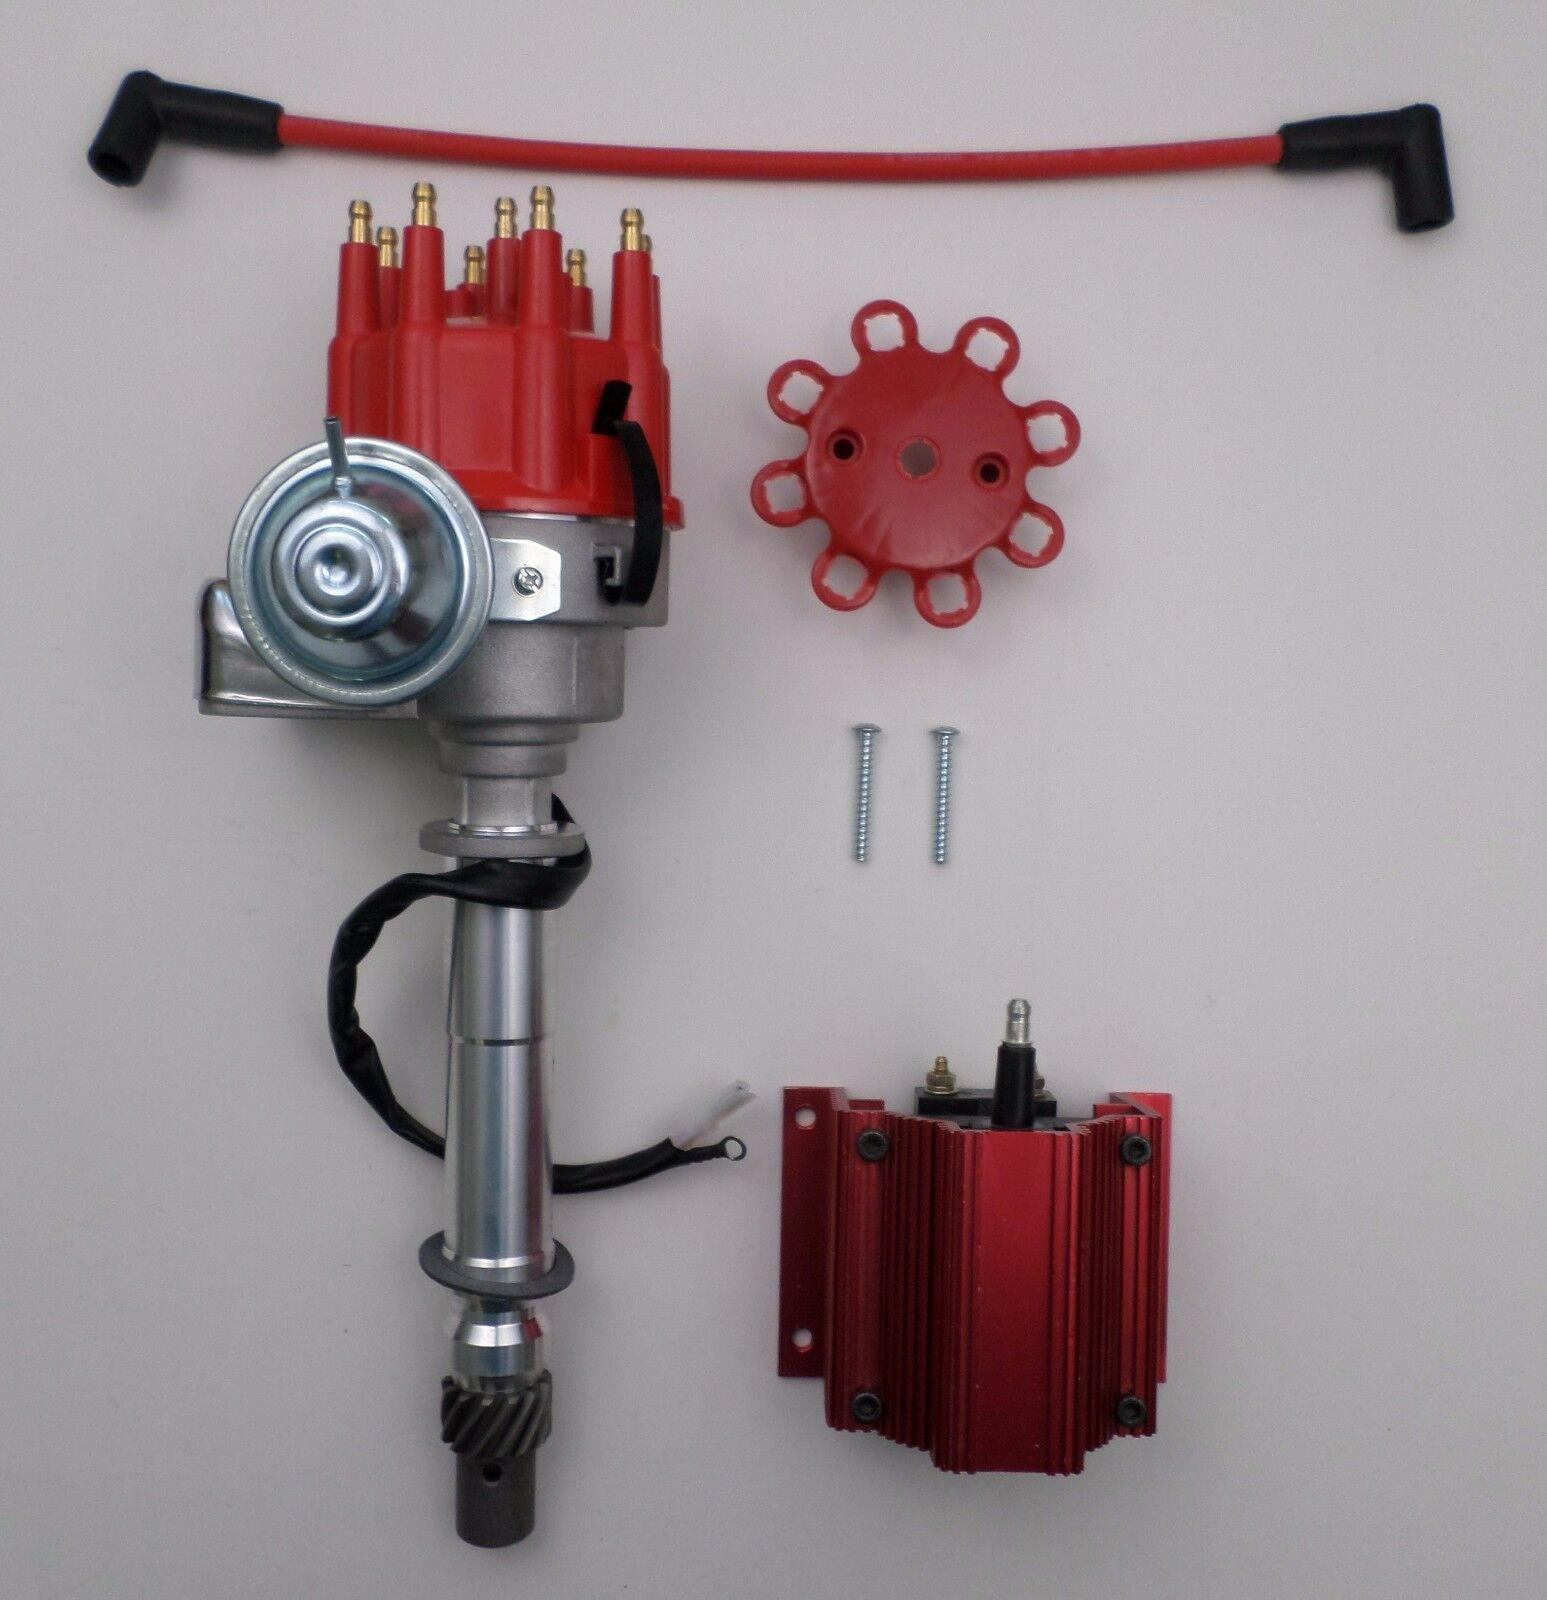 Chevy Small Big Block Ready To Run Red Cap Hei Distributor 78 Gm Module 50k 1 Of 1free Shipping See More